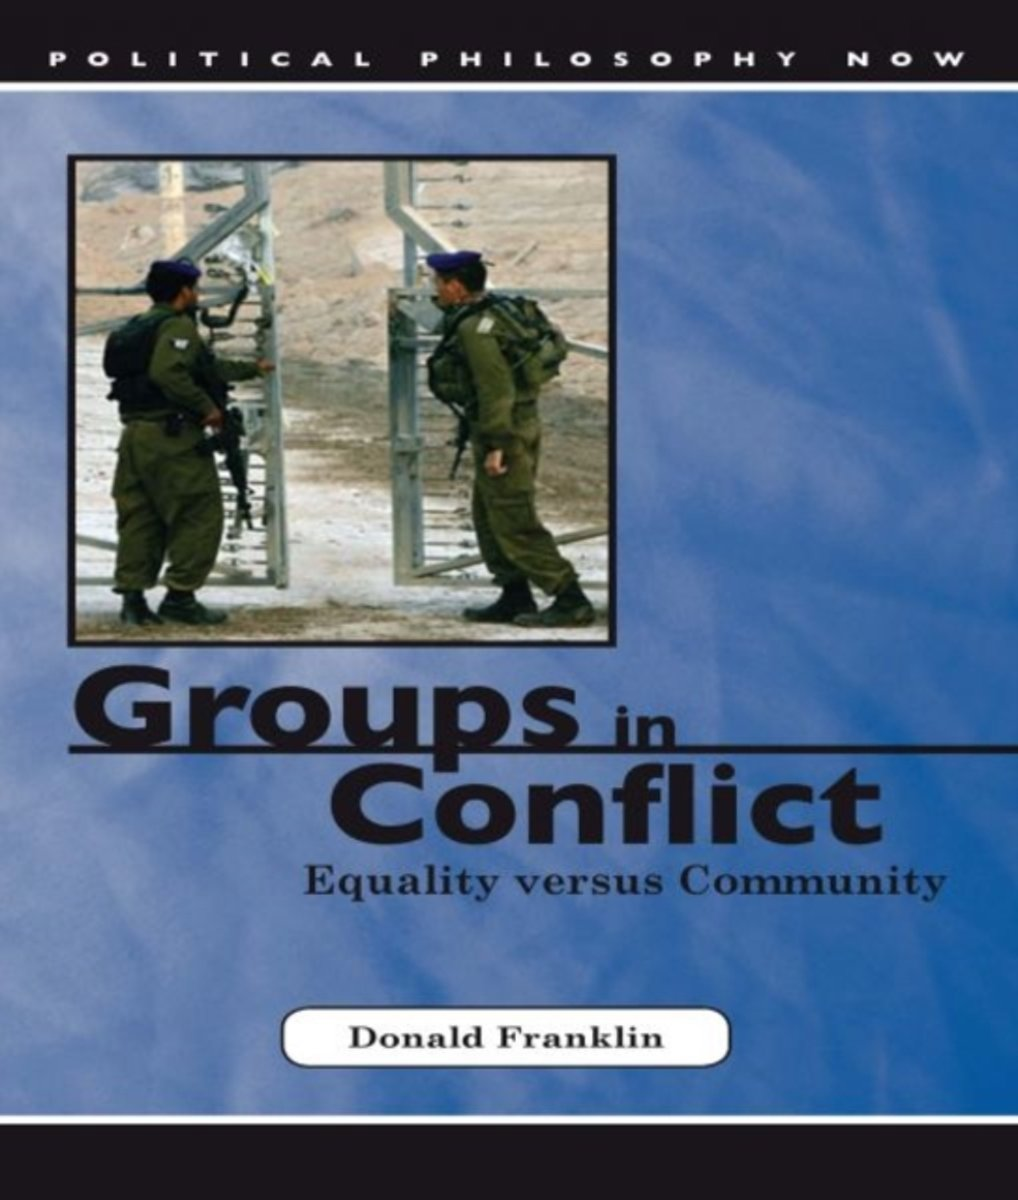 Groups in Conflict